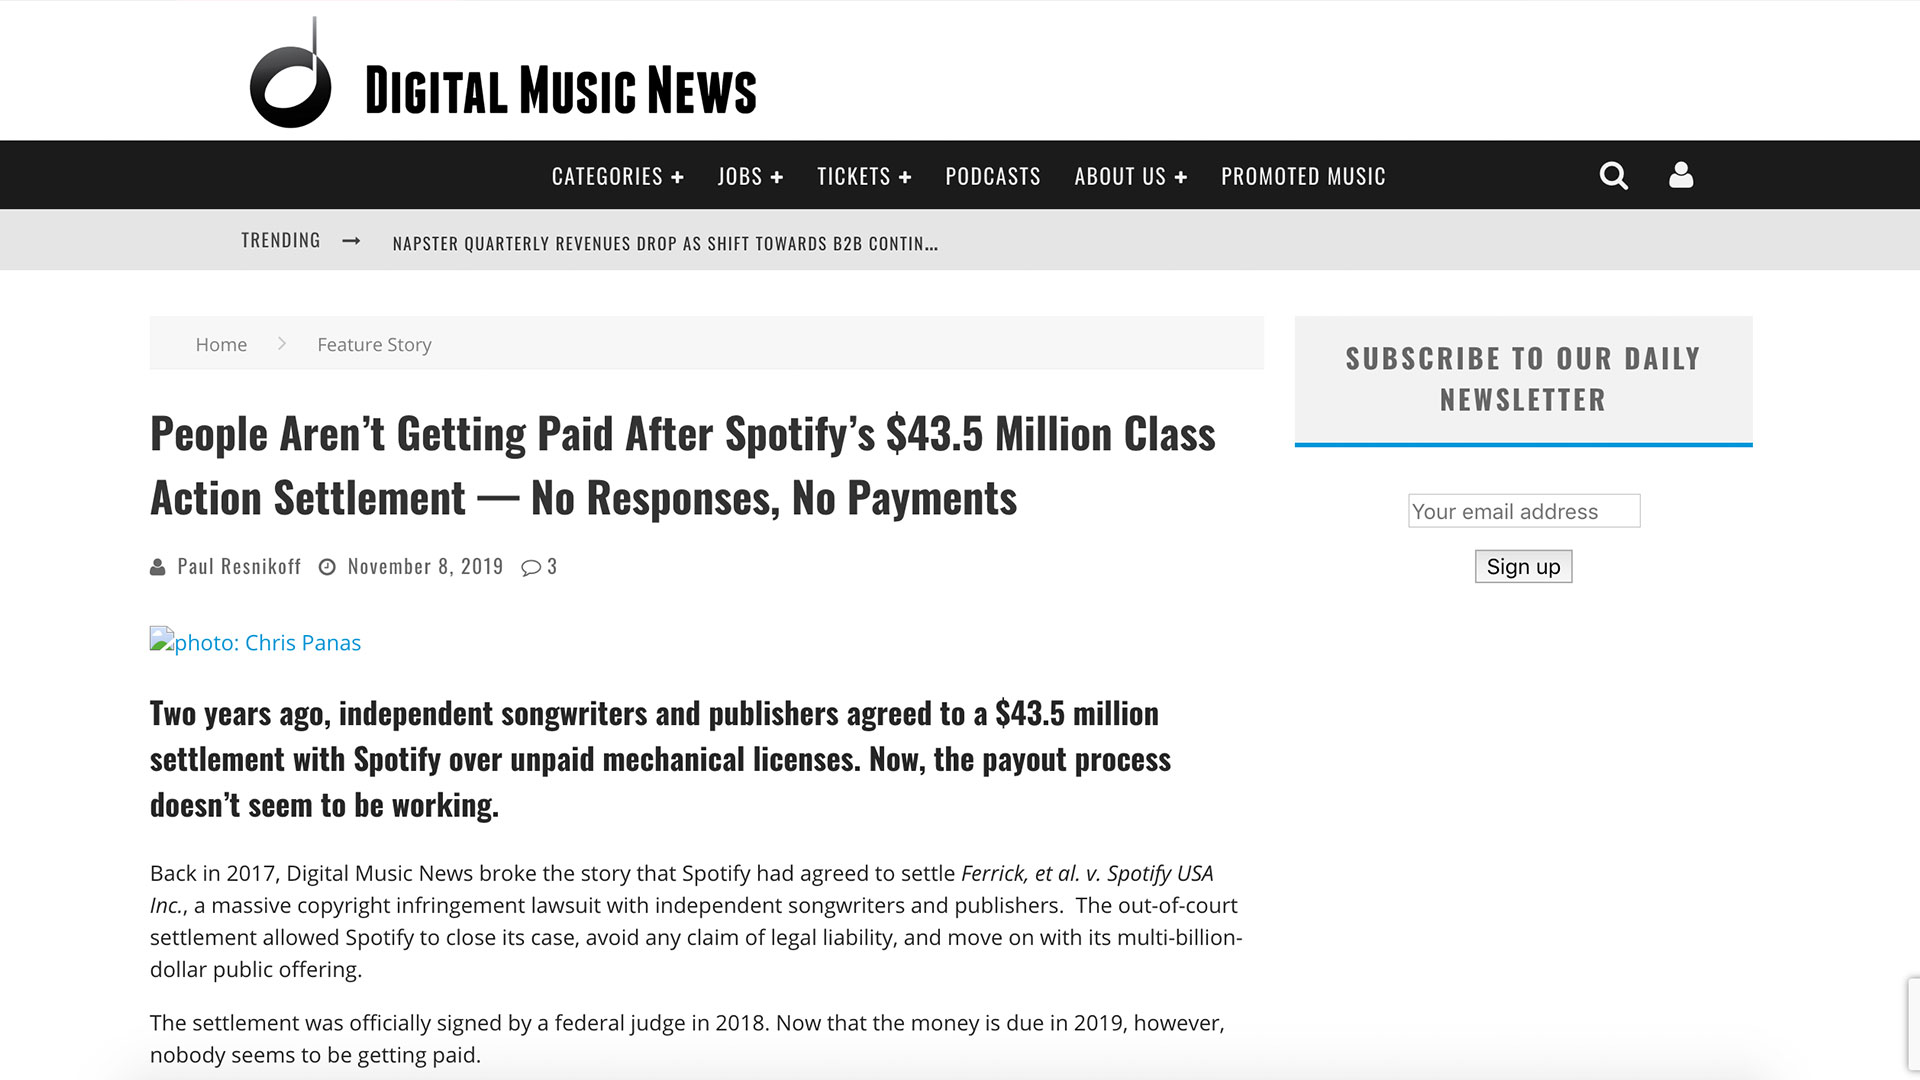 Fairness Rocks News People Aren't Getting Paid After Spotify's $43.5 Million Class Action Settlement — No Responses, No Payments